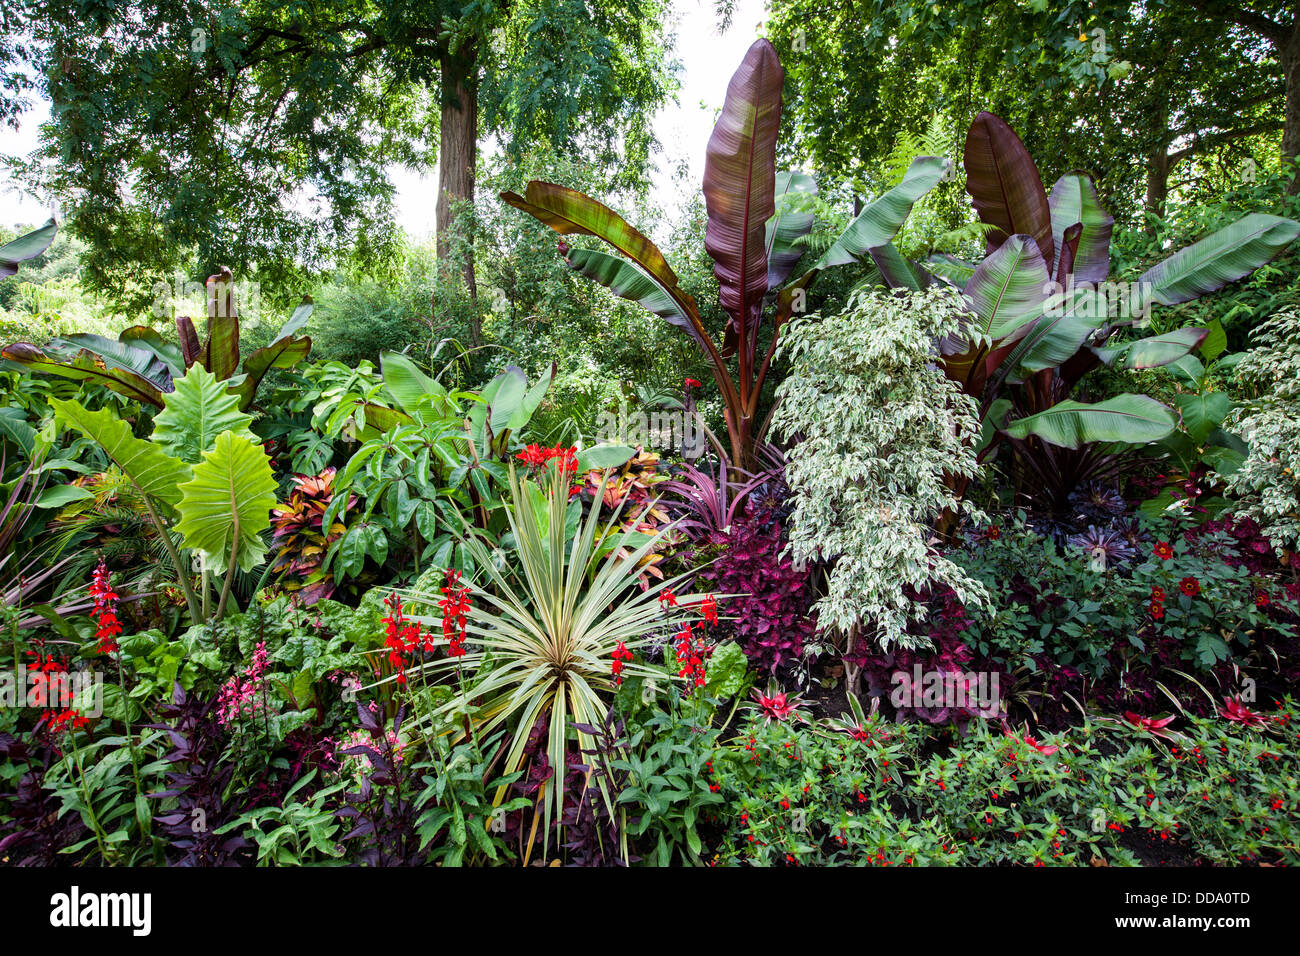 The Tropical Gardens of St James's Park, London Stock Photo